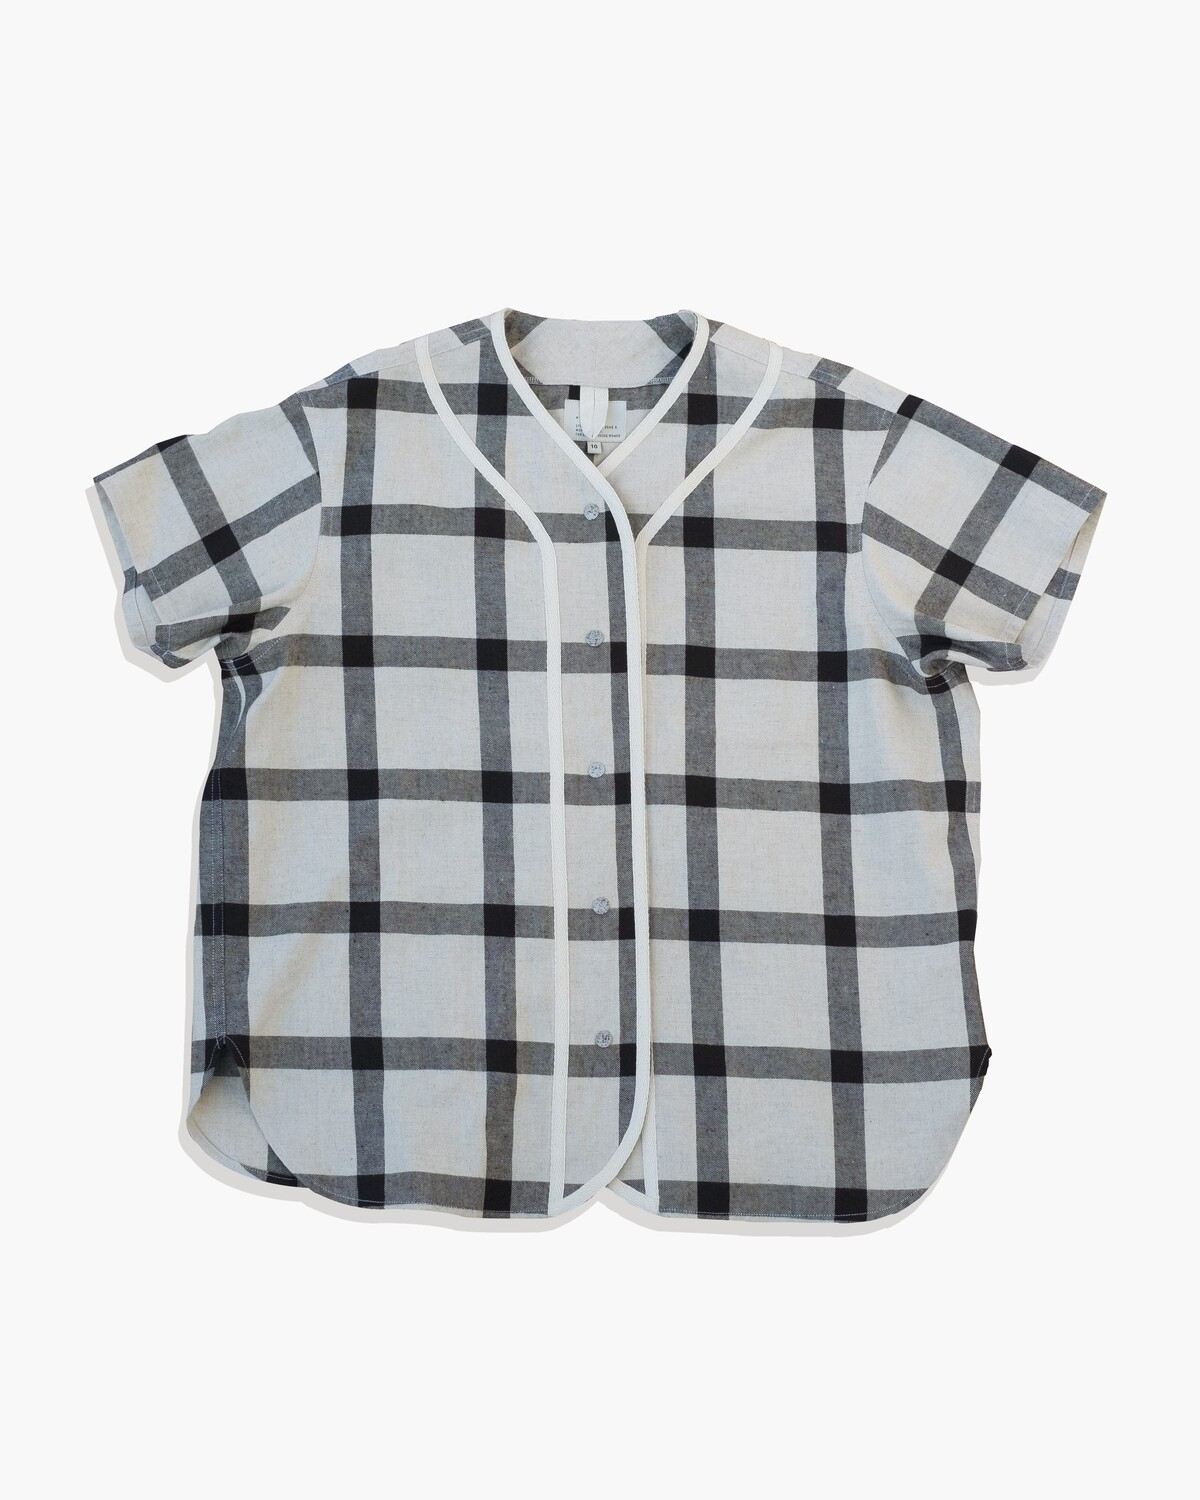 W'menswear All-Girl's League Shirt in Check